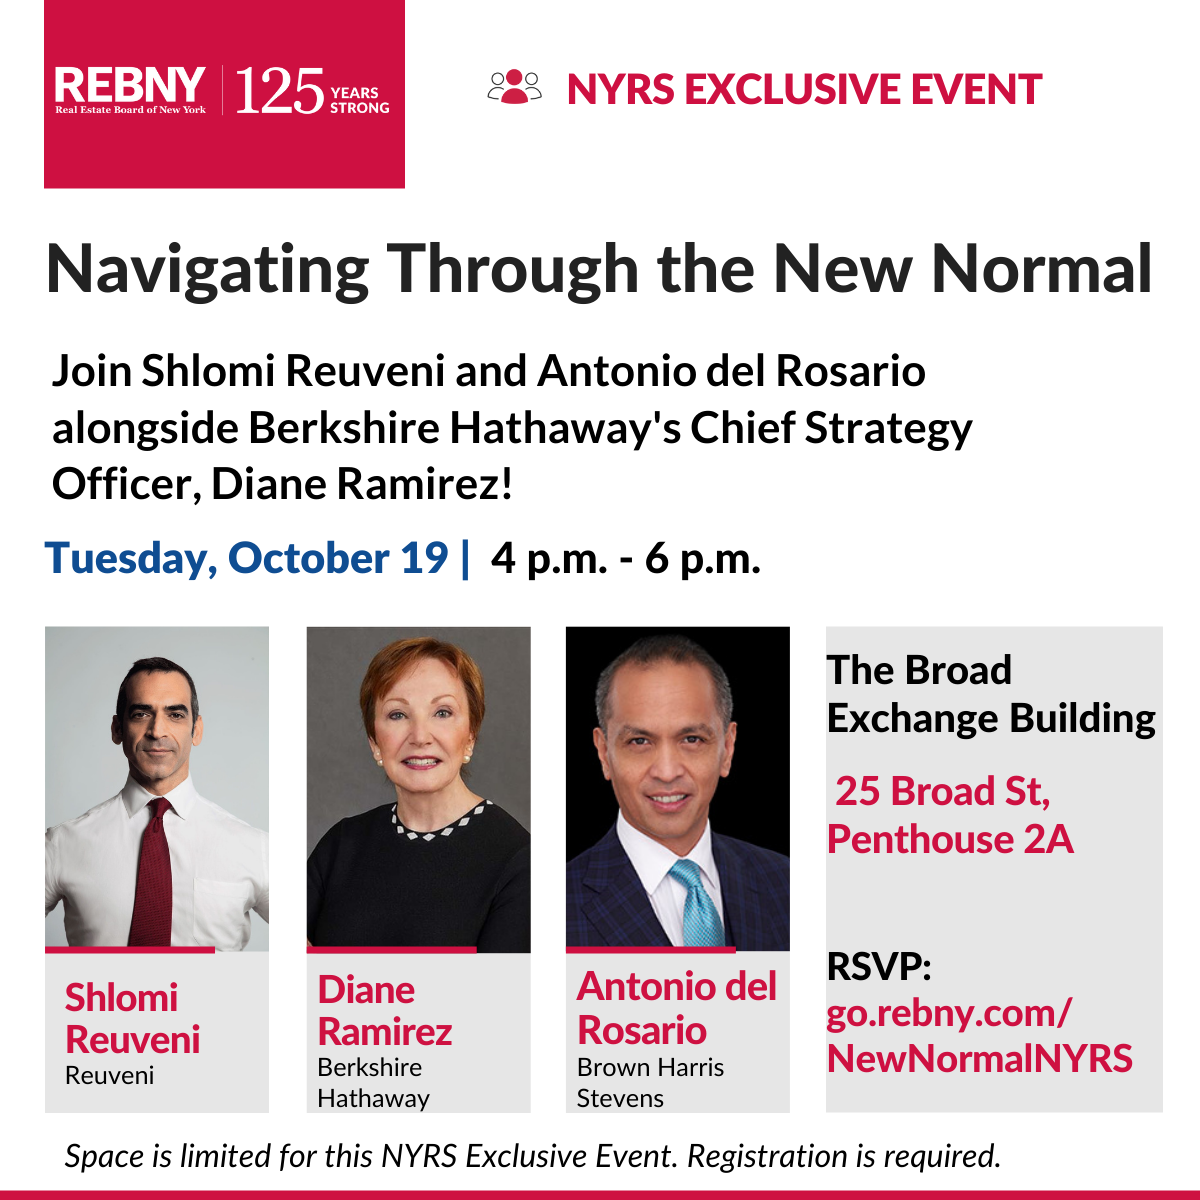 NYRS Exclusive Event: Navigating Through the New Normal